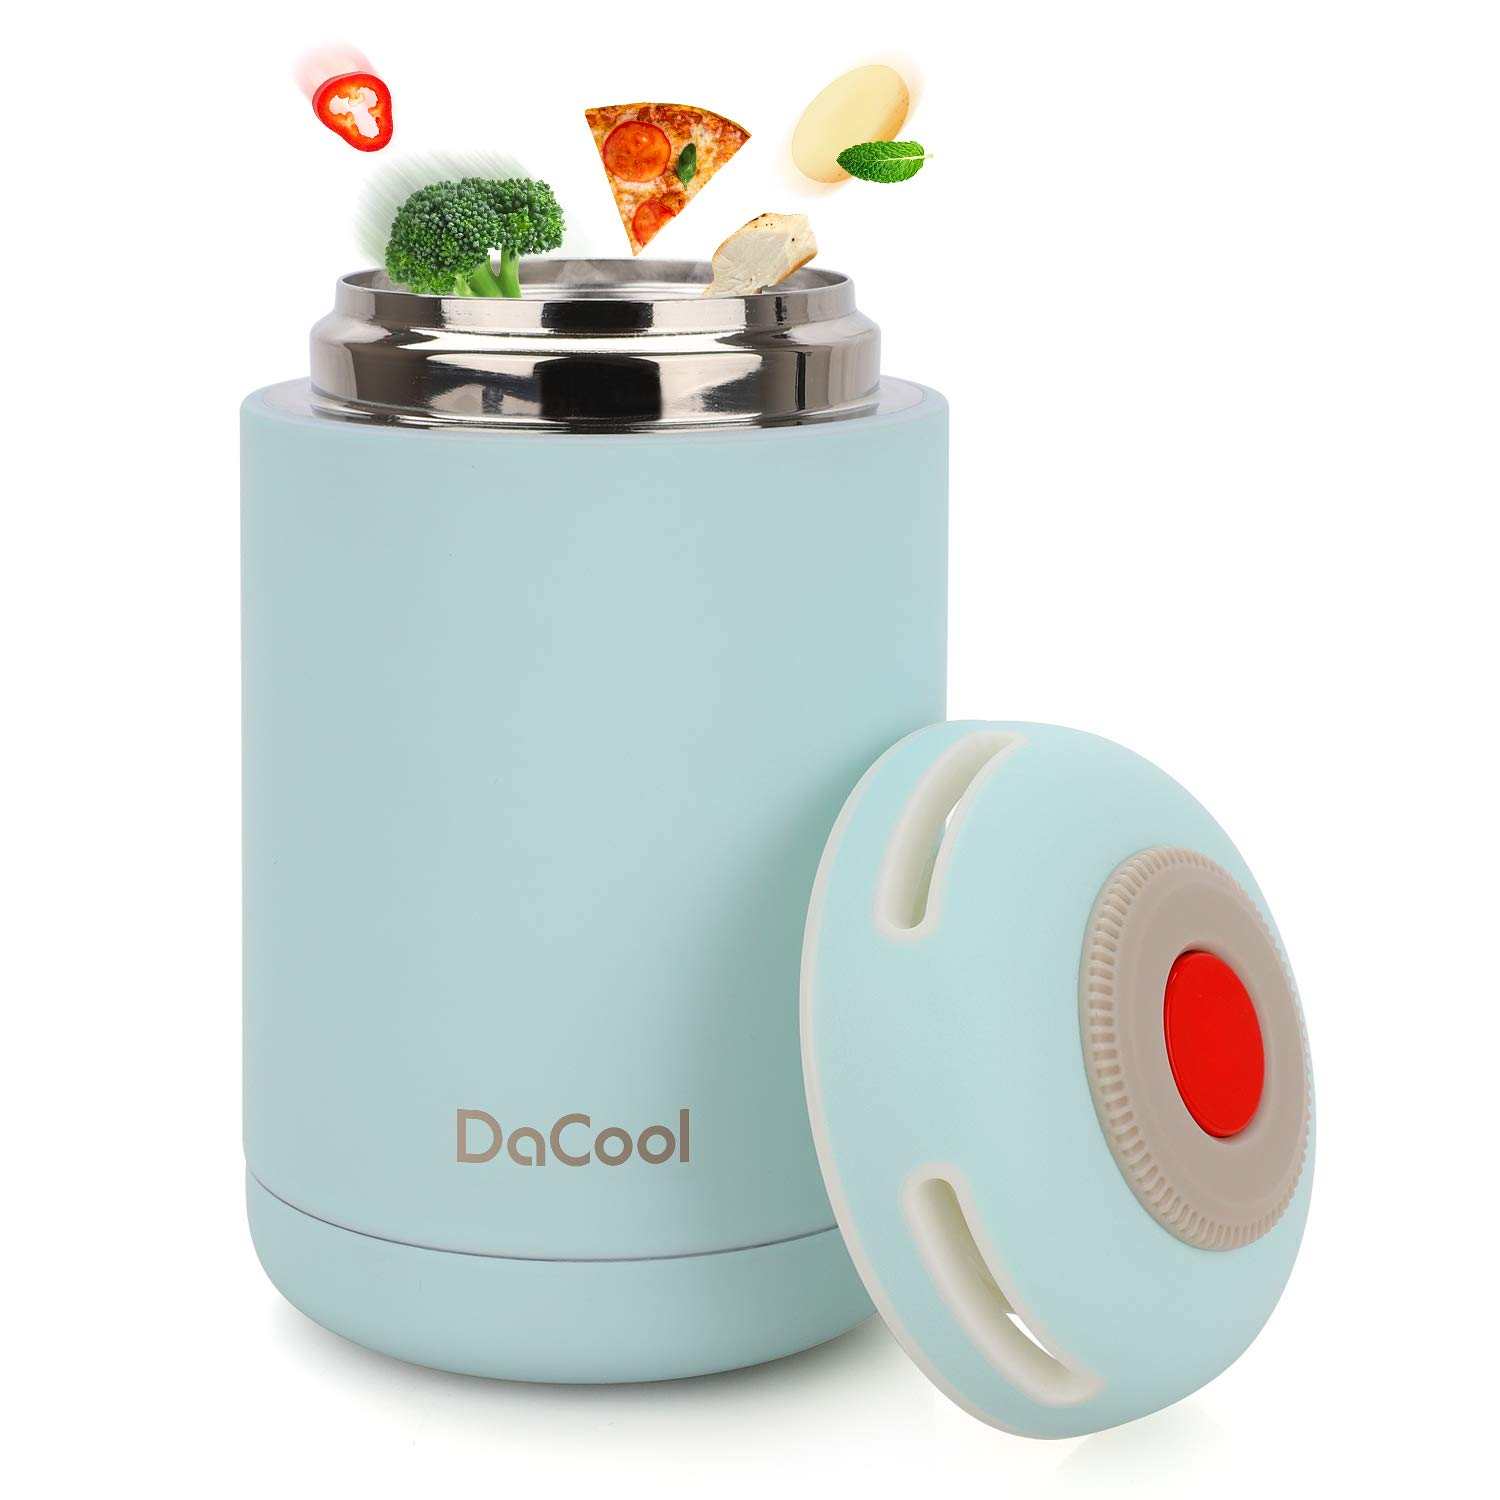 DaCool Hot Food Jar Vacuum Insulated Stainless Steel Thermos Food 16 oz School Lunch Containers for Kids Adult Office Leak Proof Keep Food Hot Cold Warm Container for Picnic Outdoors, BPA Free - Blue